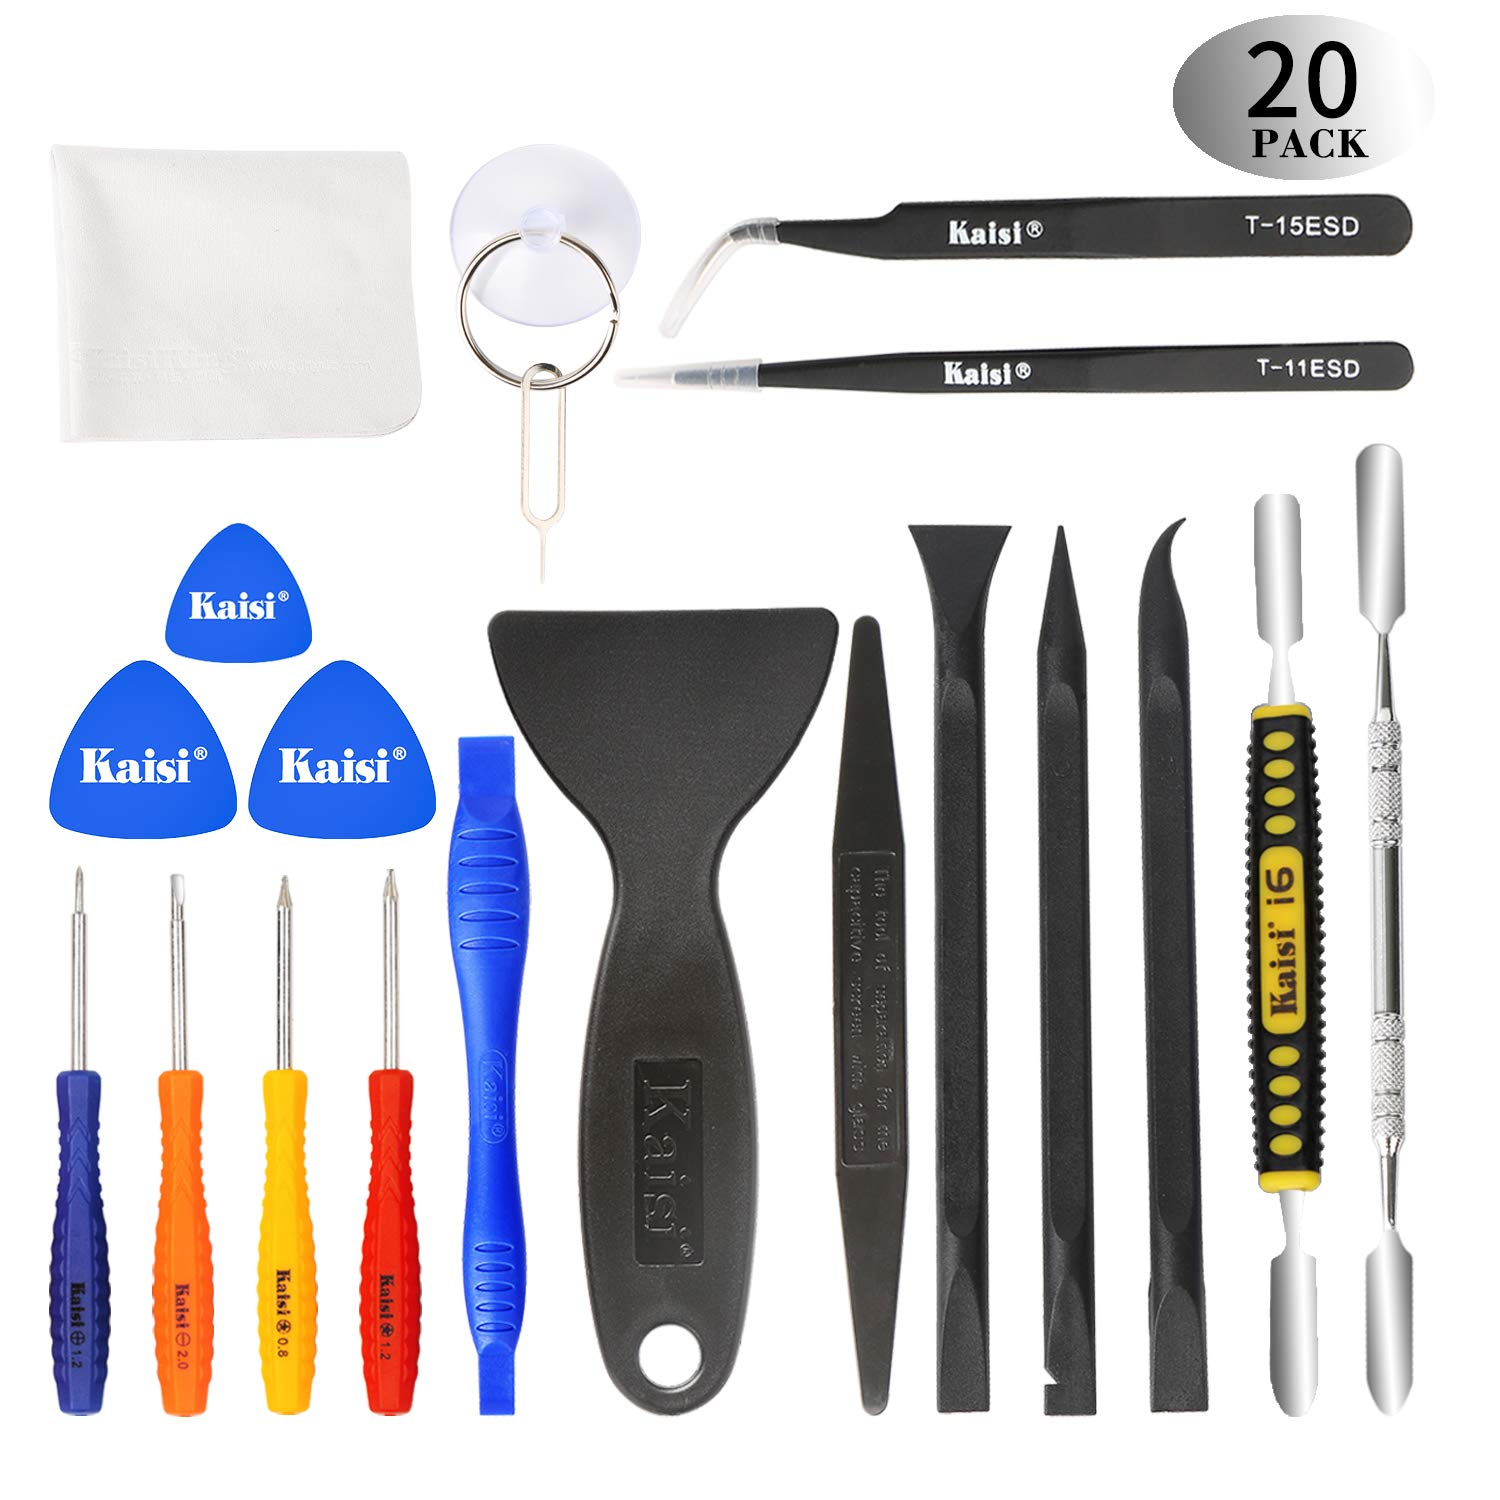 Kaisi Ultrathin Steel Professional Opening Pry Tool Repair Kit with Non-Abrasive Nylon Spudgers and Anti-Static Tweezers, 20 Piece Repair Tool Set